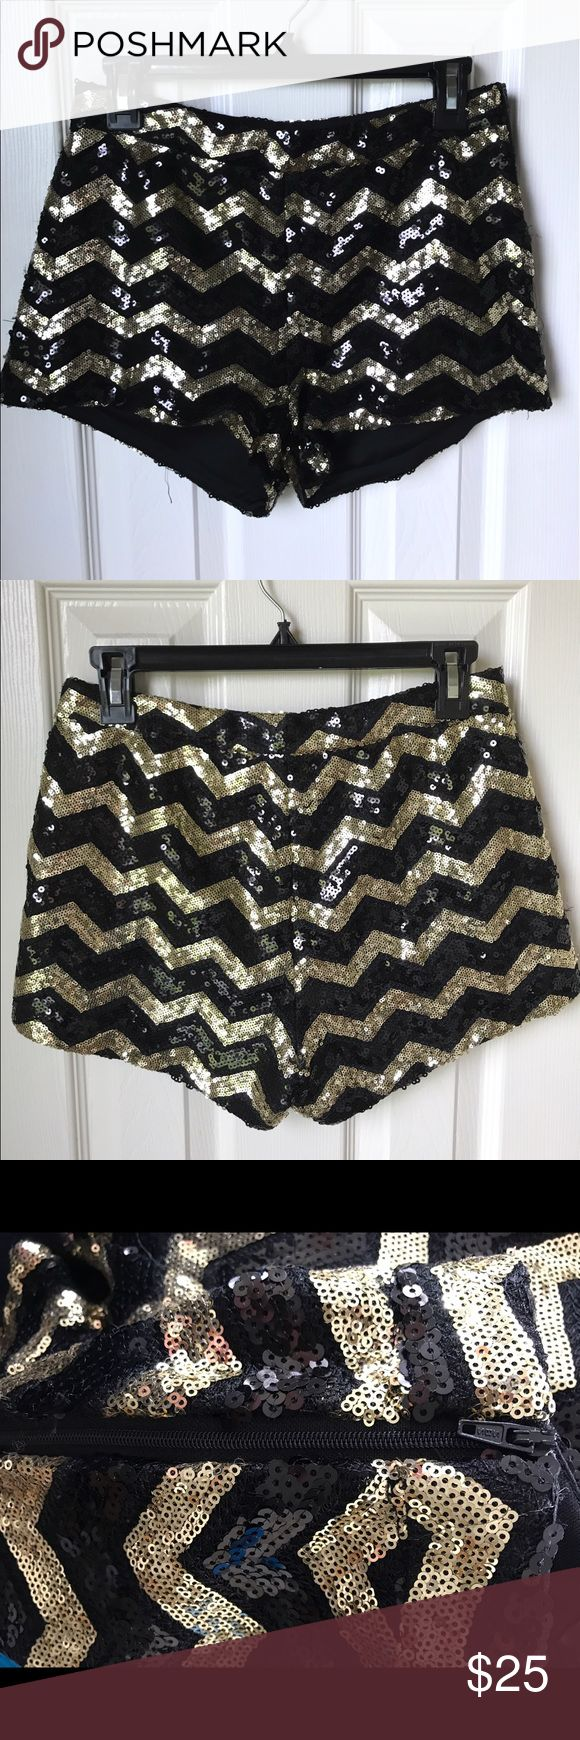 """Forever 21 Black & Gold Sequin Shorts You guys, these are to die for! I wore them out in Miami and received so many compliments. Covered in sequins, perfect condition, 2"""" inseam. Would fit a size 2-4. Forever 21 Shorts"""